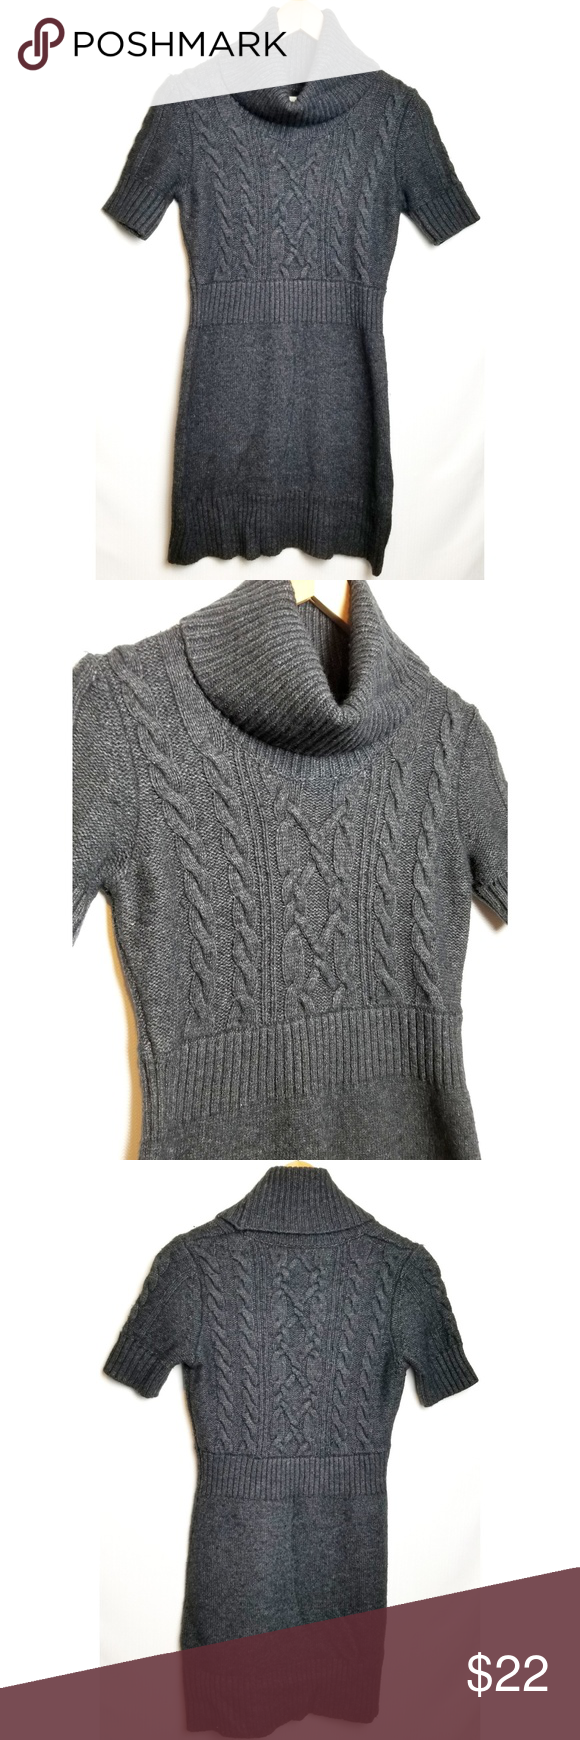 Loft Small Sweater Dress Cable Knit Sweater Dress Sweaters Sweater Dress